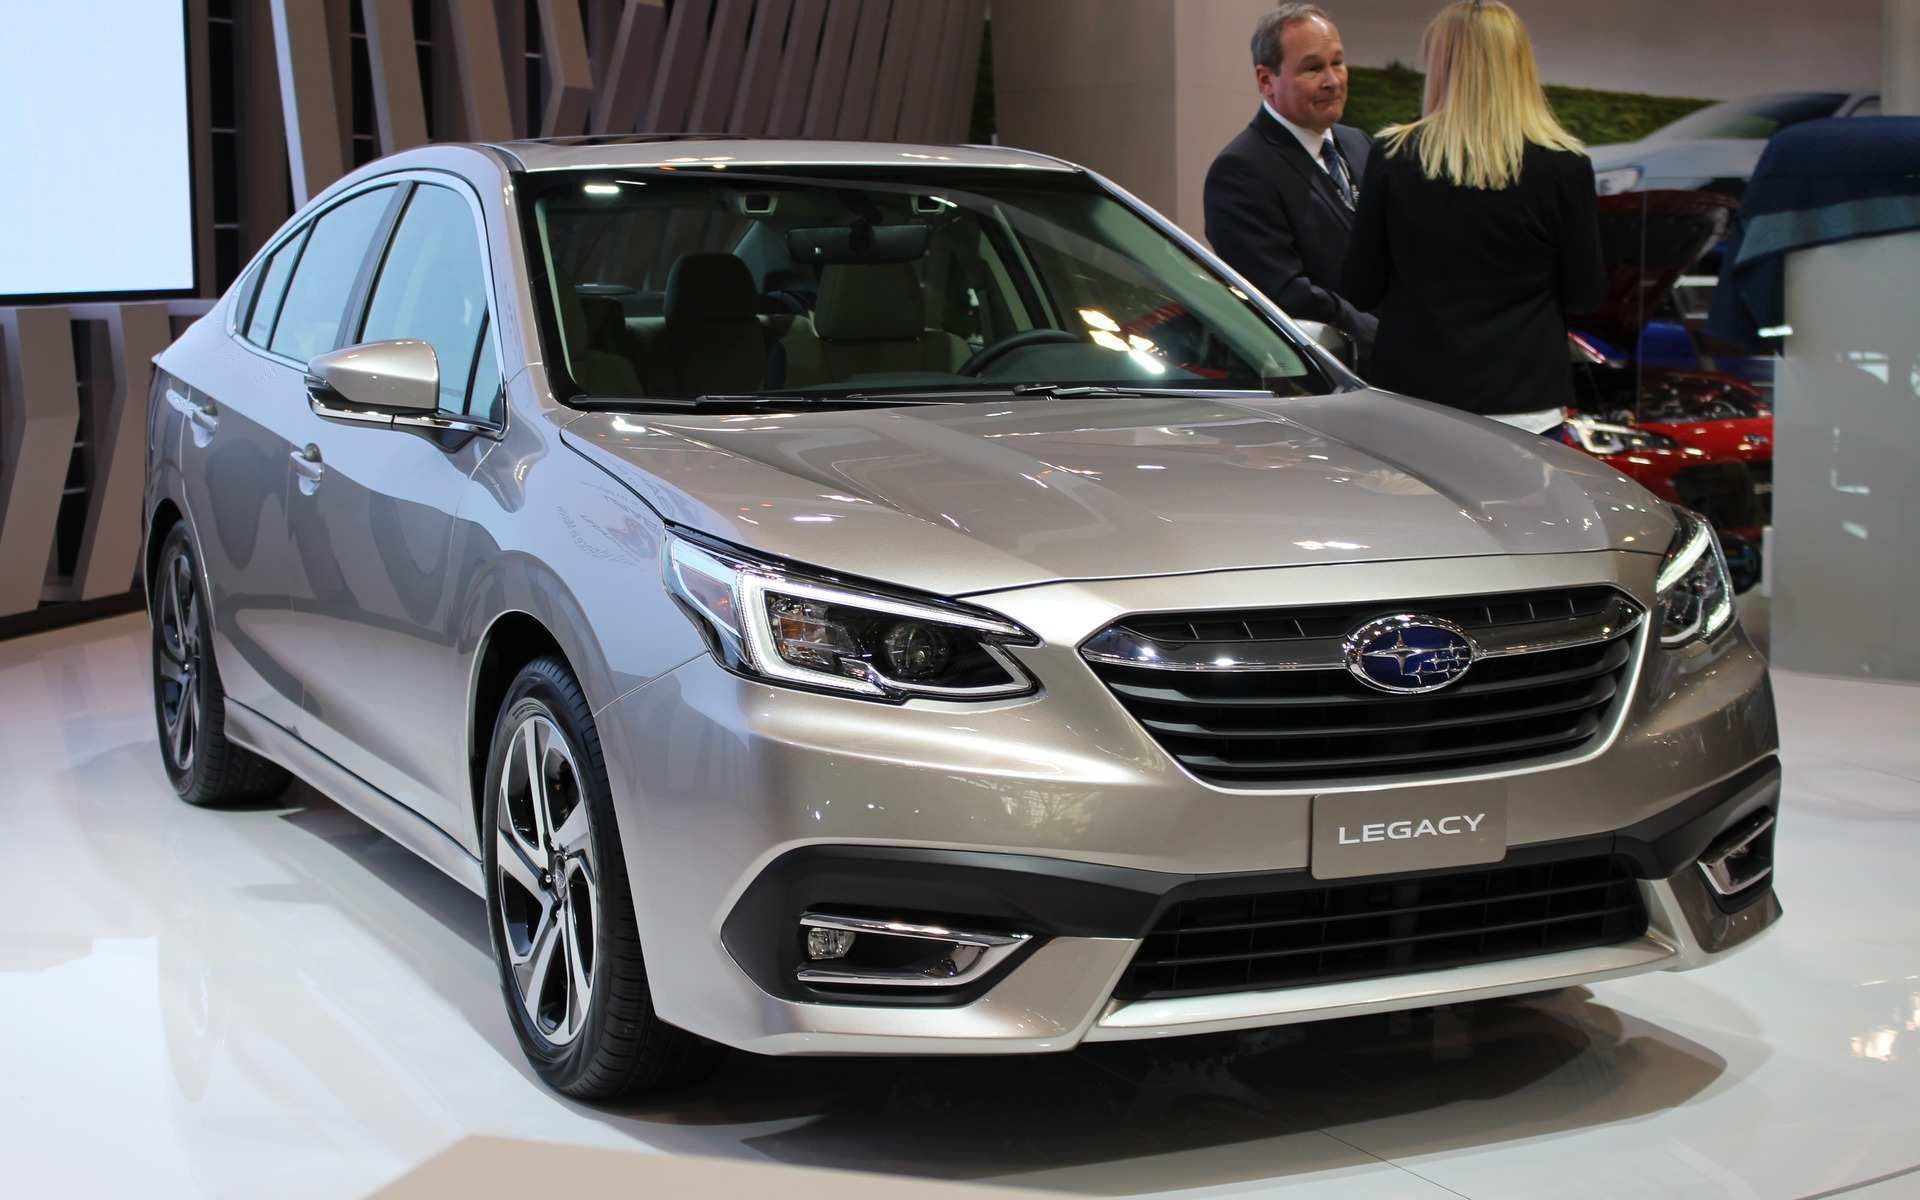 Subaru Legacy 2020 Japan Price and Release Date【2020】 スバル